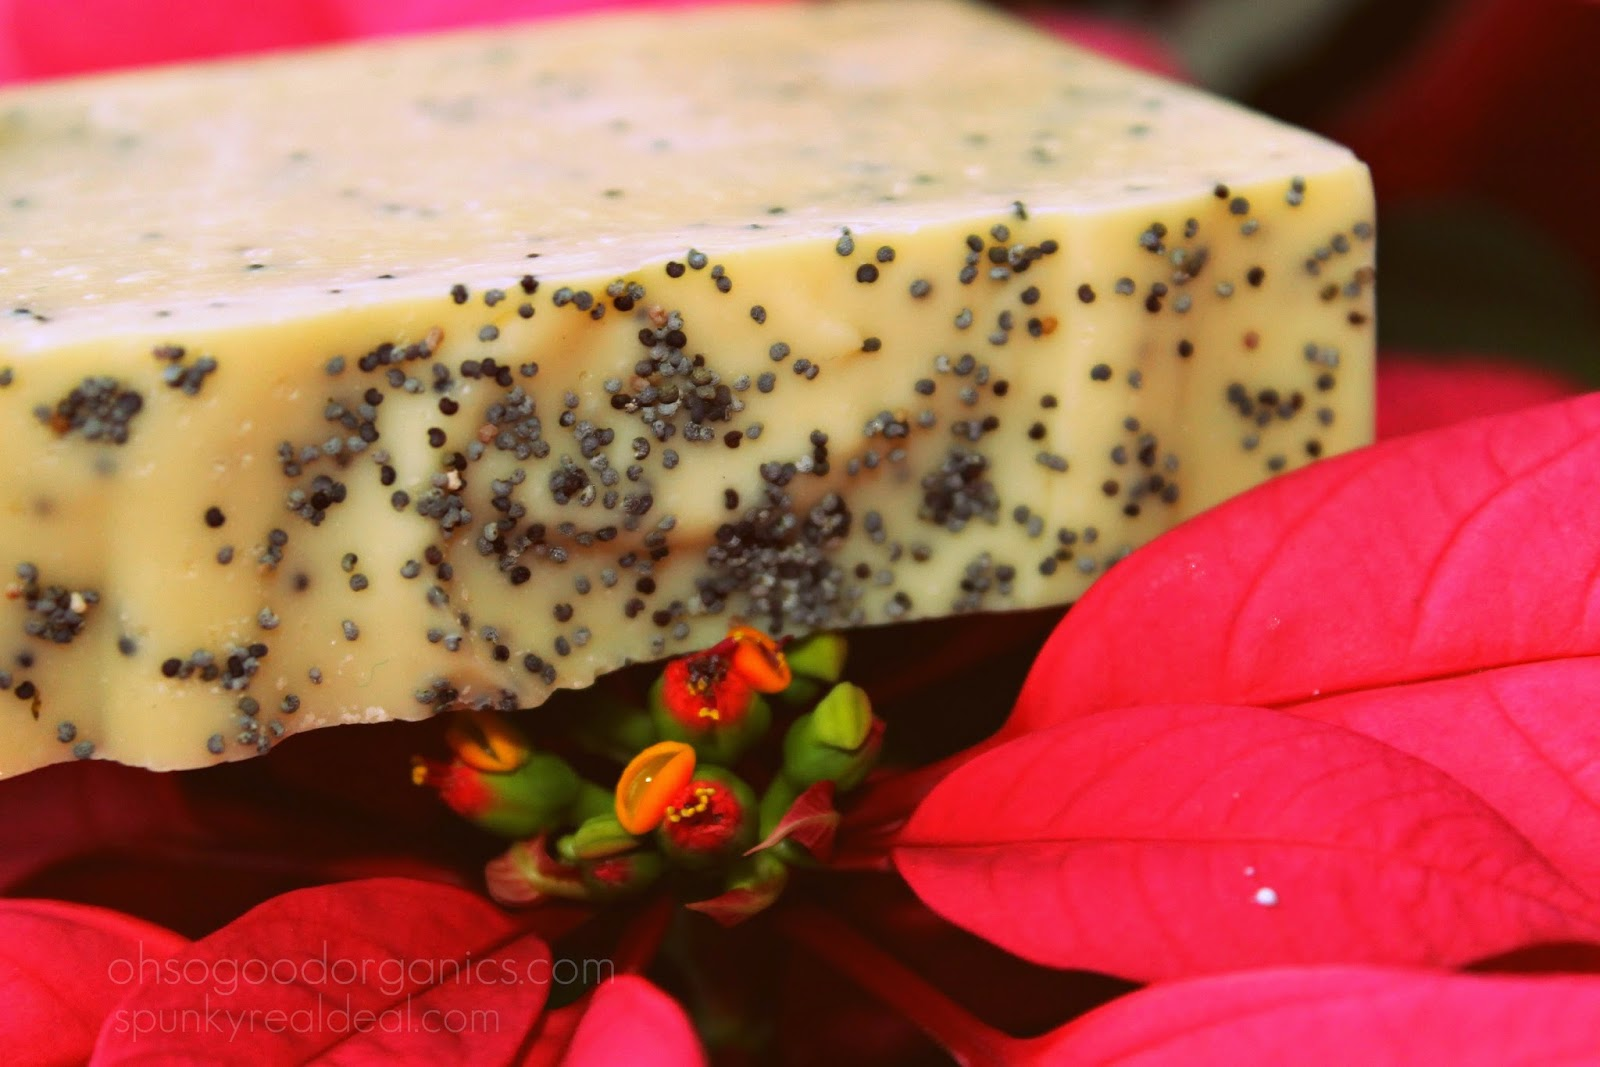 Organic Soap Sweet Orange Poppy